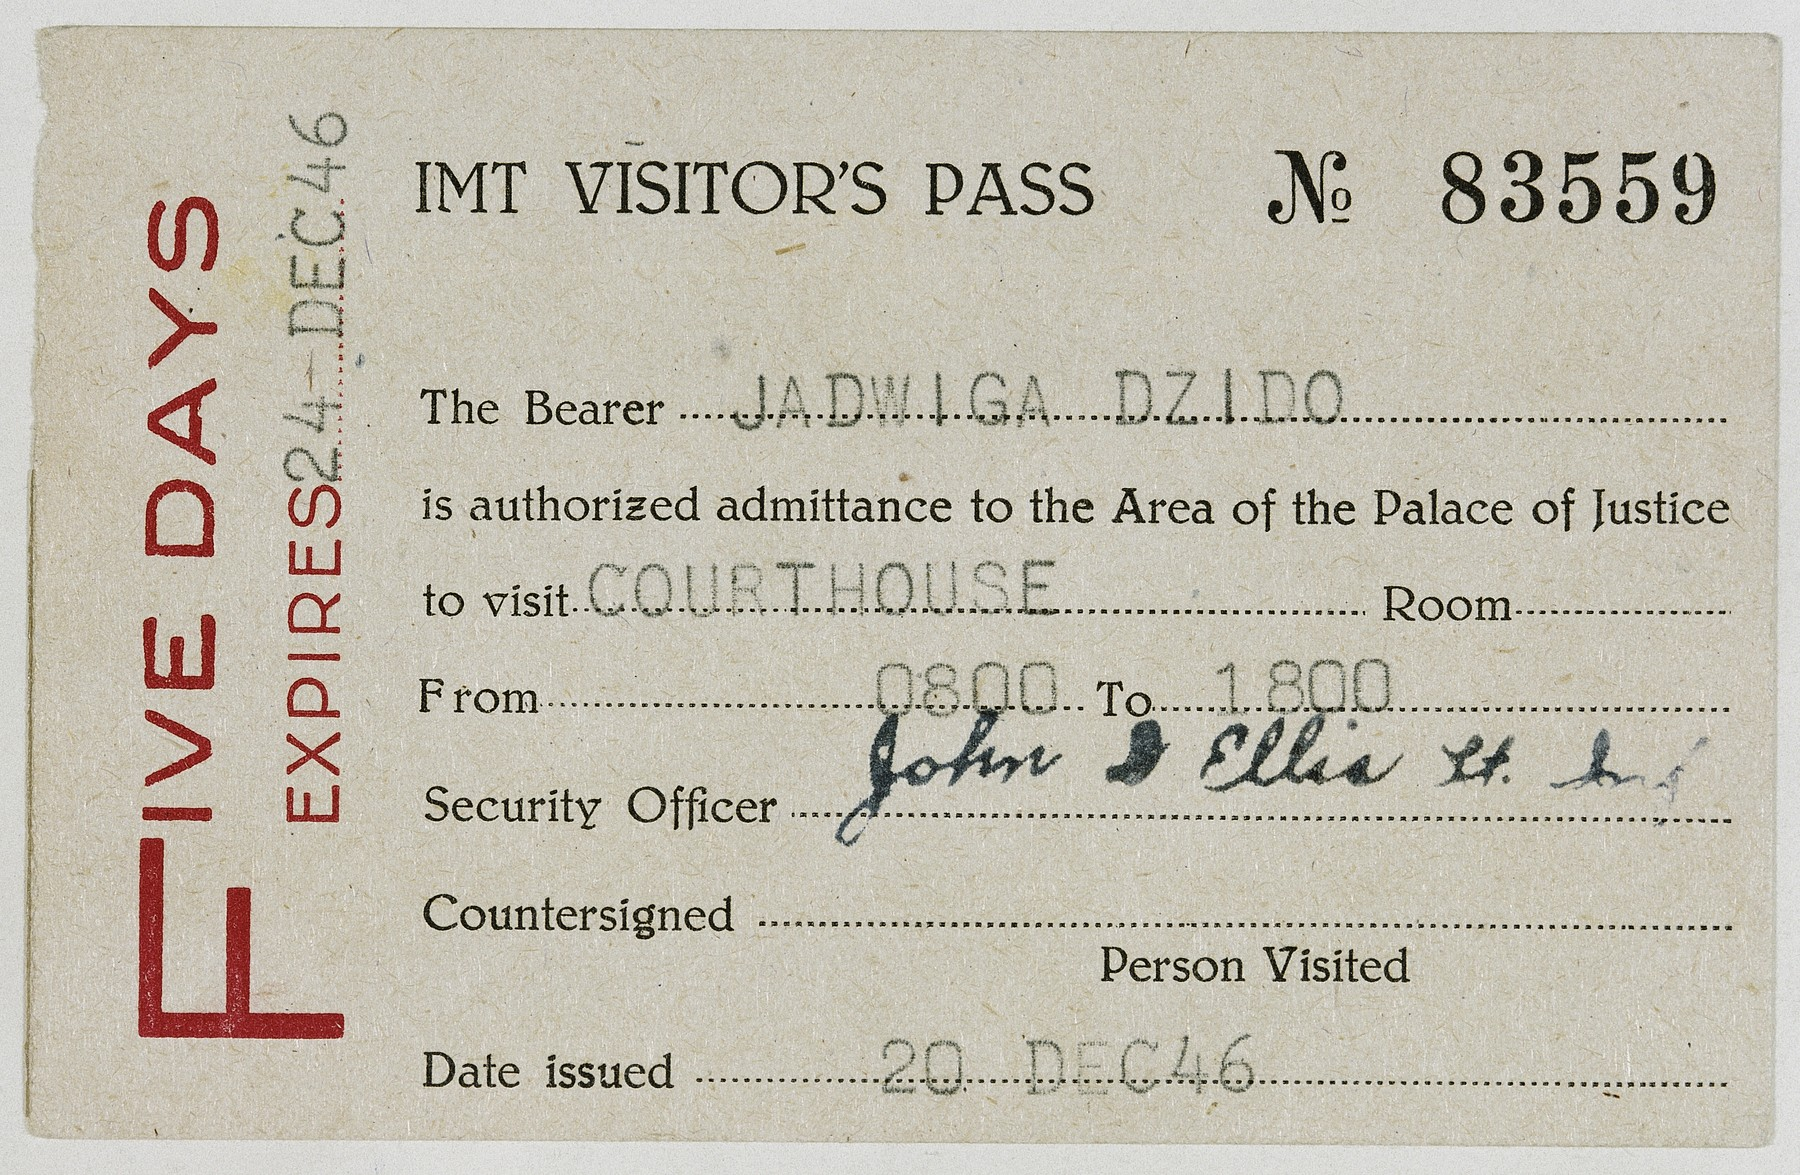 Entry pass for Jadwiga Dzido to attend a session of the Nuremberg Medical Case trial, where she also appeared as a witness.